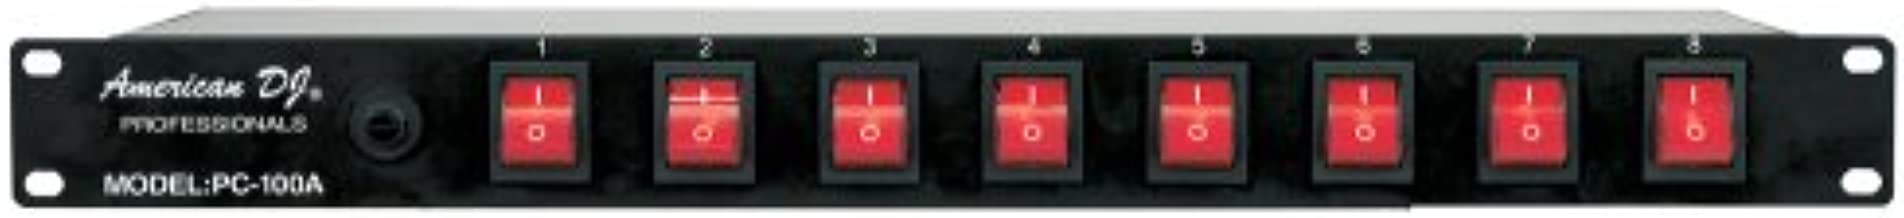 American DJ 8 channel AC power strip with 15 amp breaker and 8 on/off toggle switches. 19 inch rack mountable